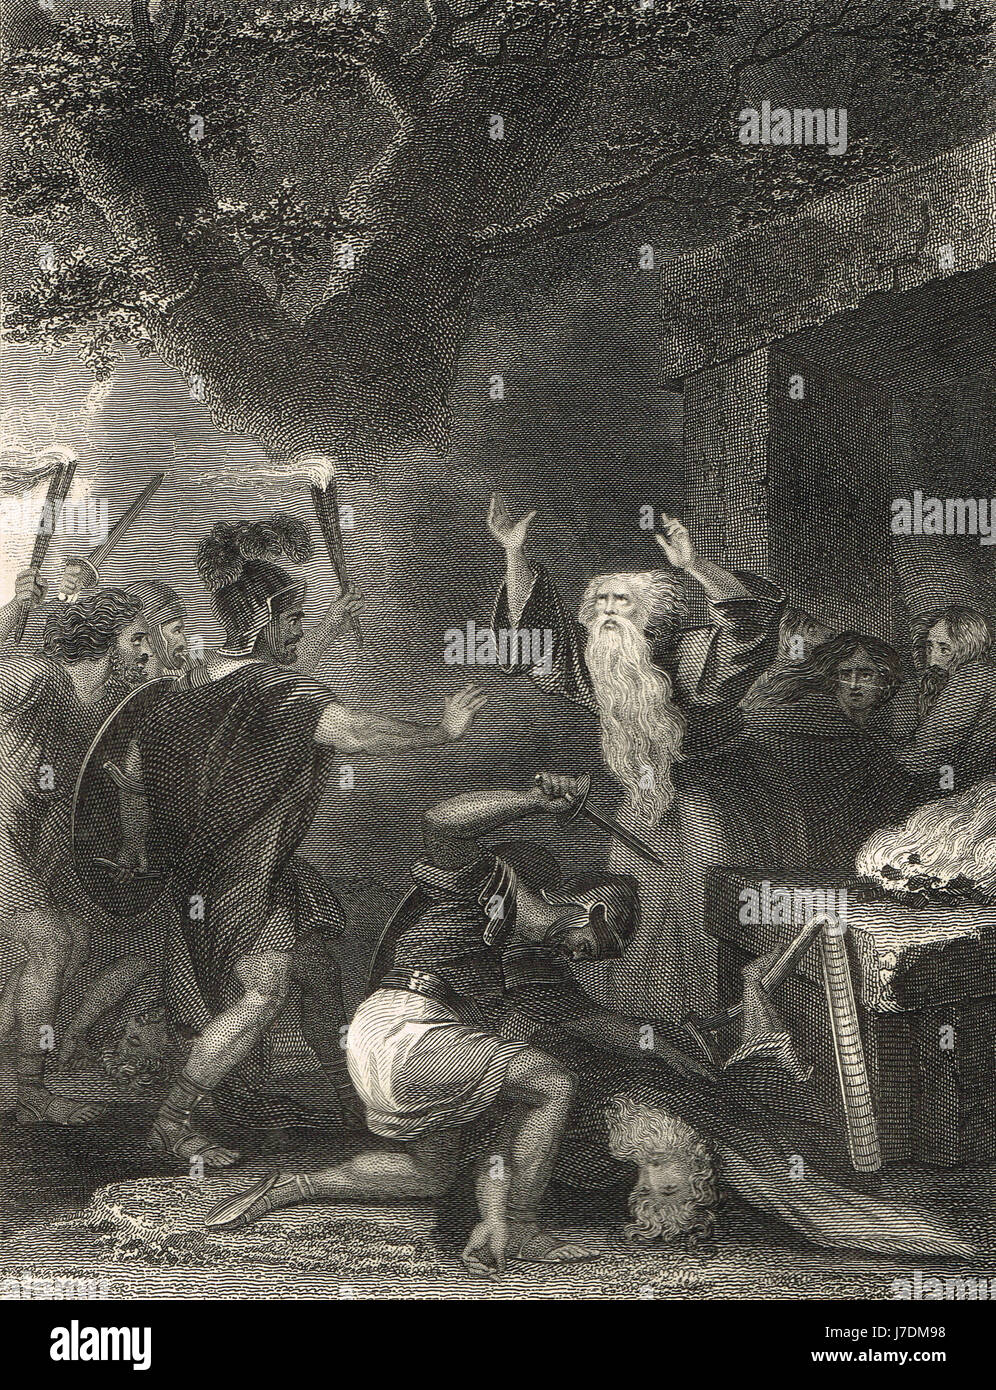 Massacre of the Druids Anglesey AD 60 - Stock Image